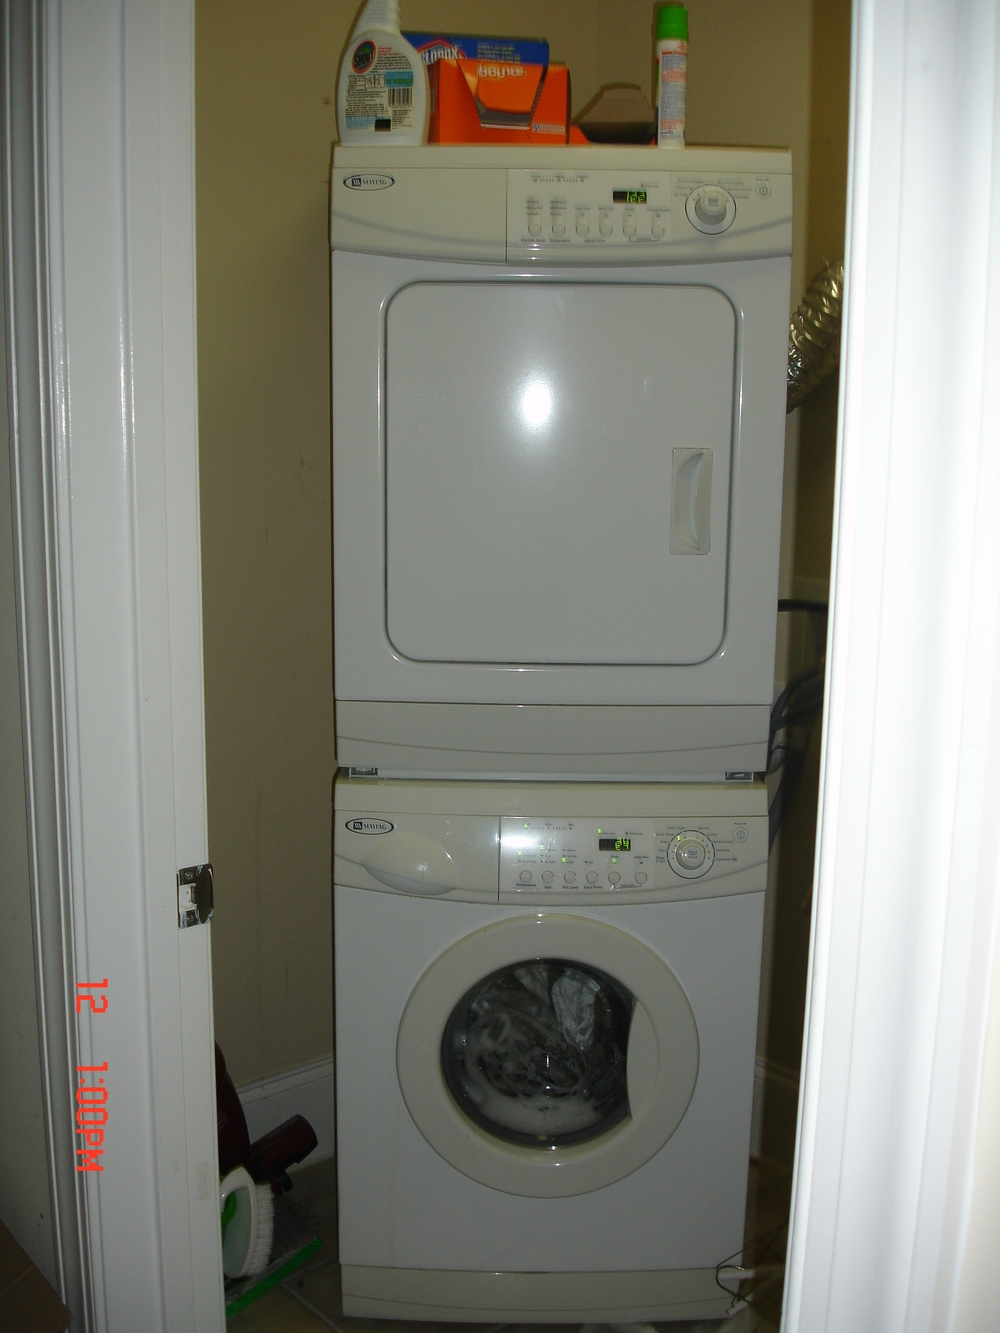 Rosemary Street, 400 W. - #112 - Stack washer-dryer.JPG